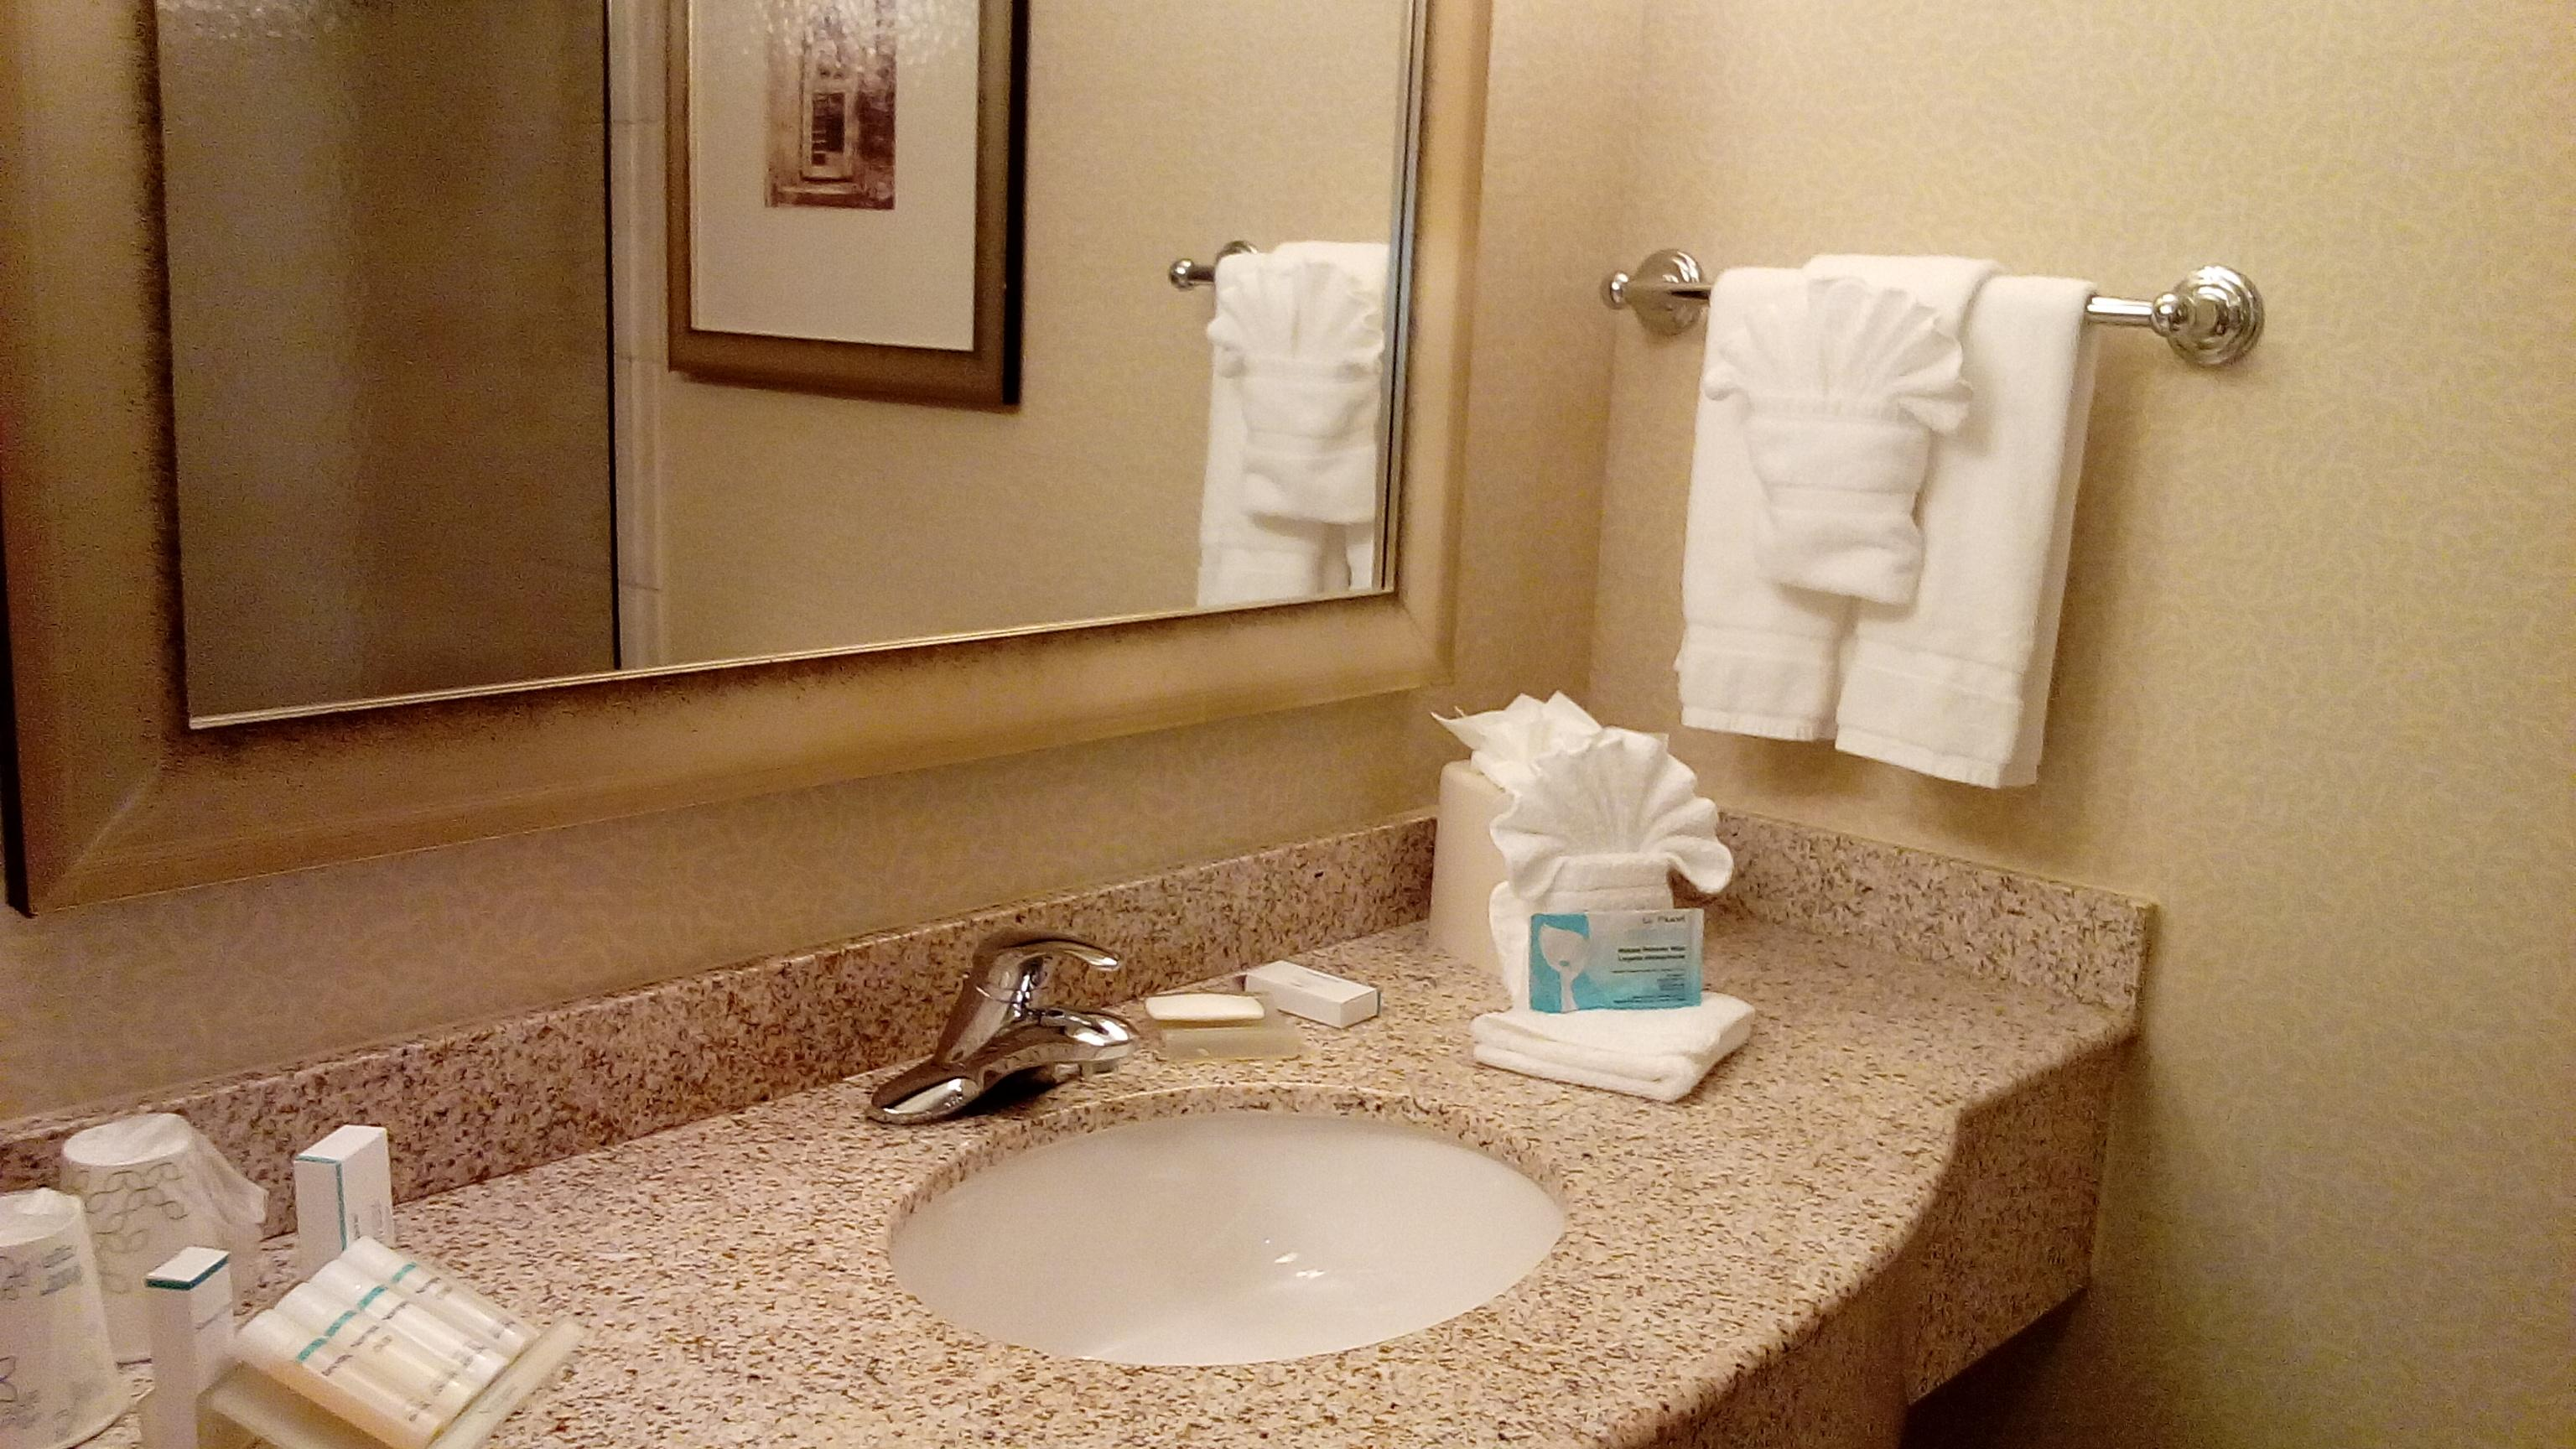 pros clean fresh tastefully decorated room with refrigerator and microwave friendly staff not far from mia - Hilton Garden Inn Miami Airport West